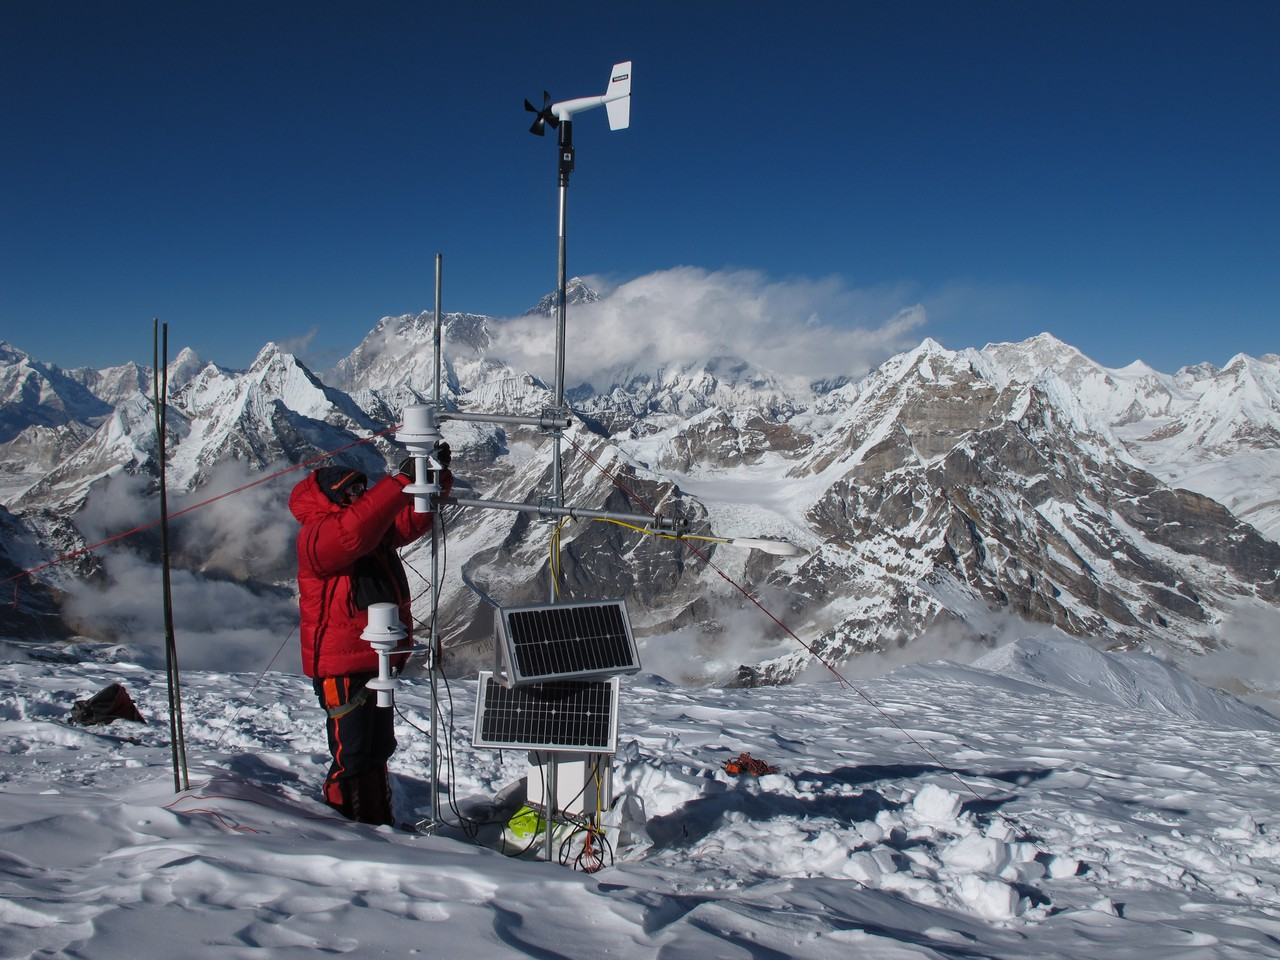 Taking measurements on Mera glacier in the Dudh Koshi basin (Everest visible in the background) (Credit: Patrick Wagnon)